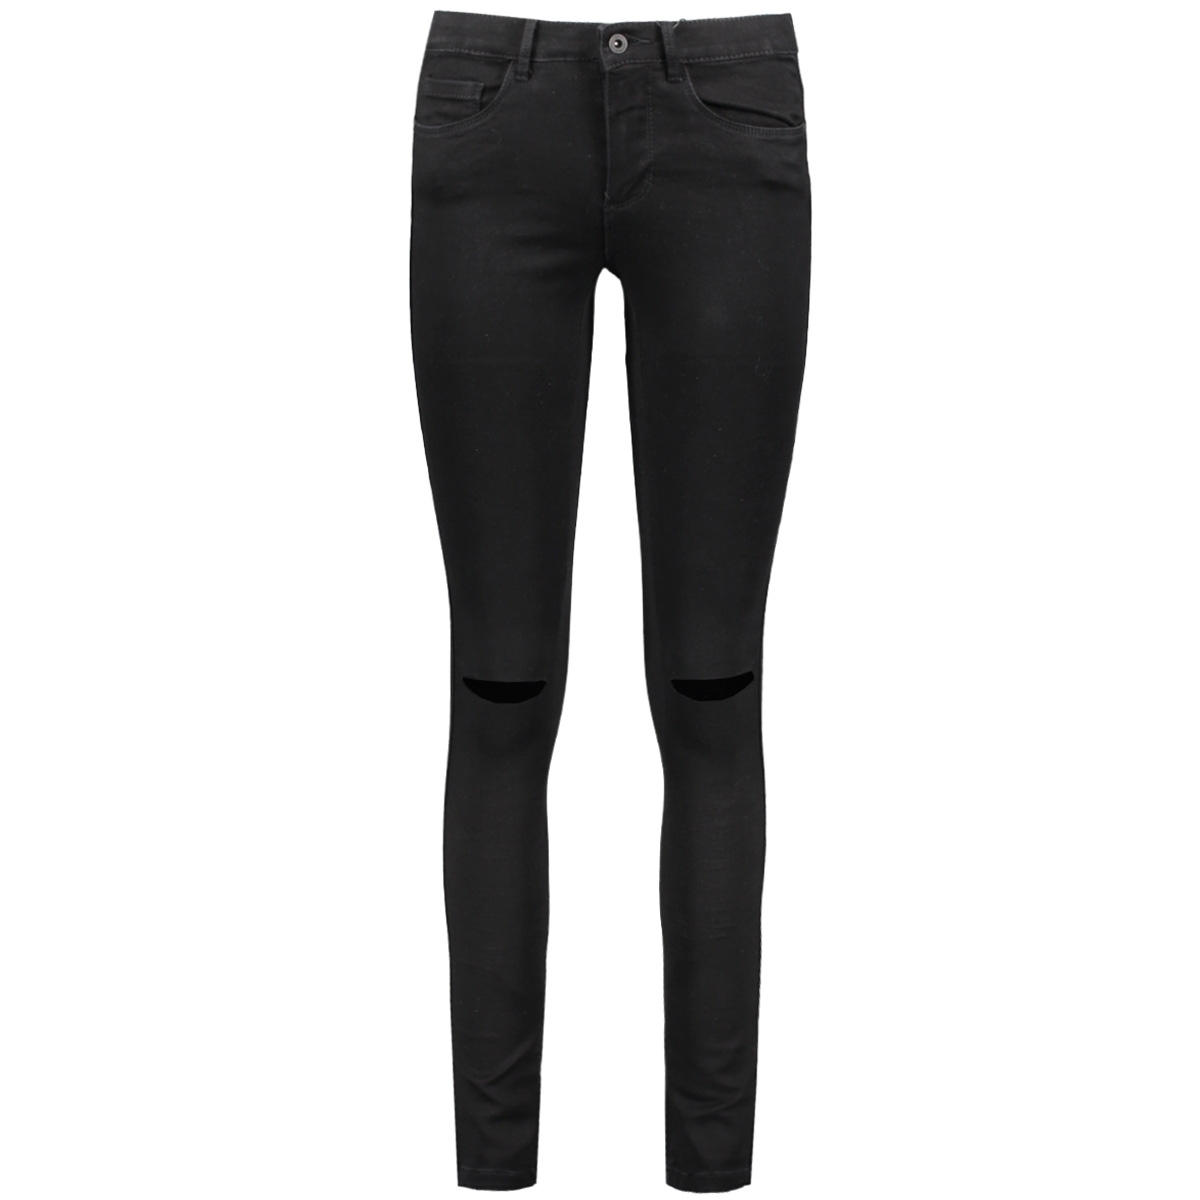 onlroyal reg sk kneecut jeans 15097973 only jeans black